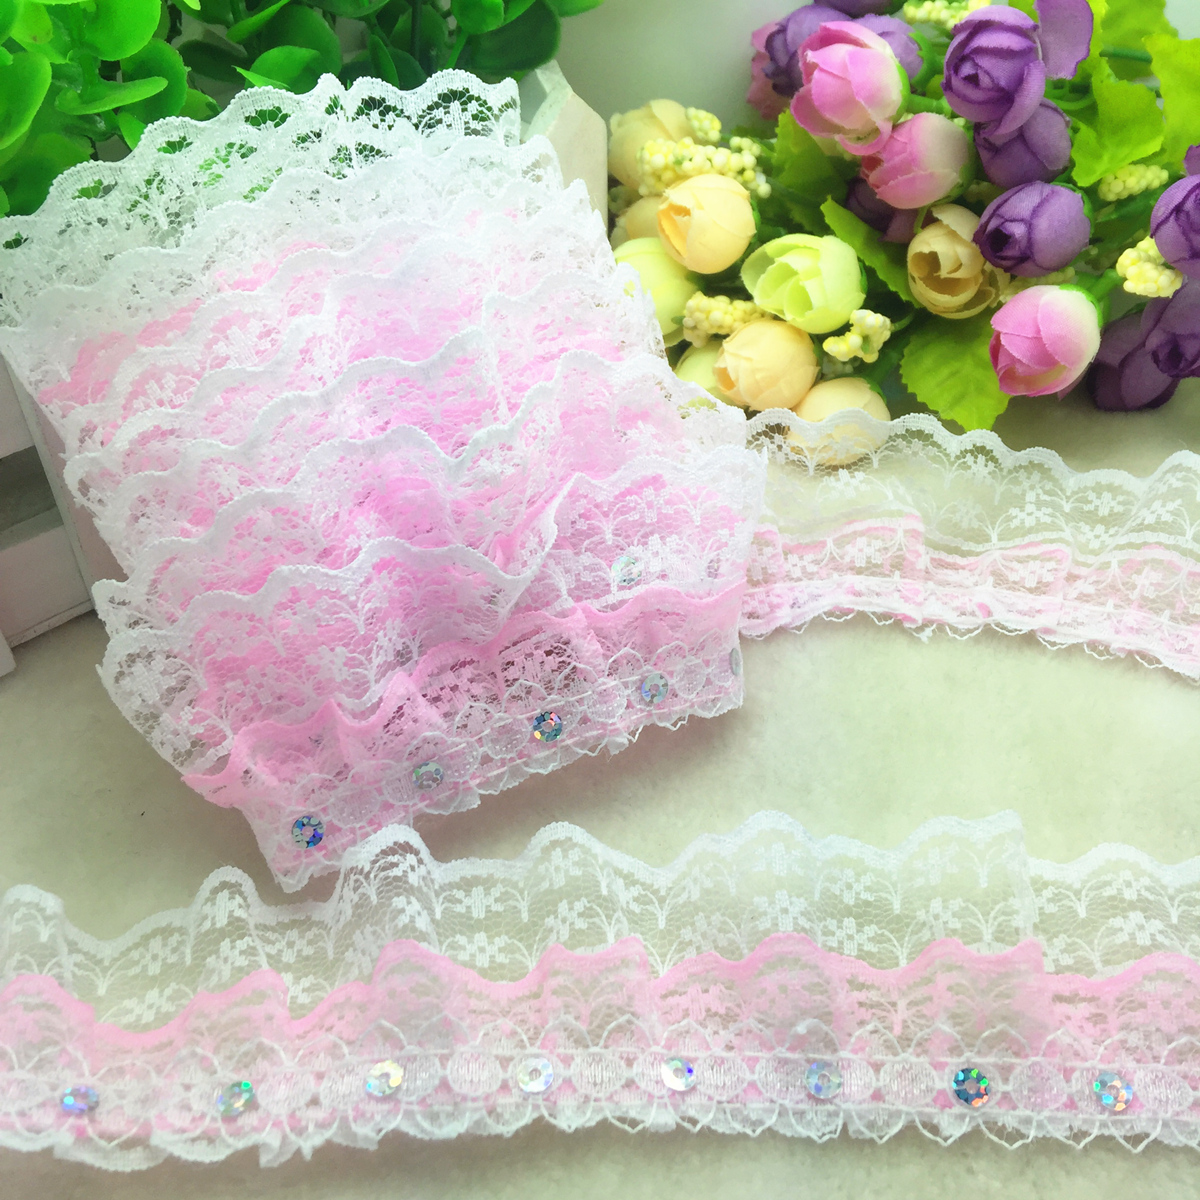 New Hot 5 yards 4-Layer 55mm Pink organza Lace Gathered Pleated sequined Trim